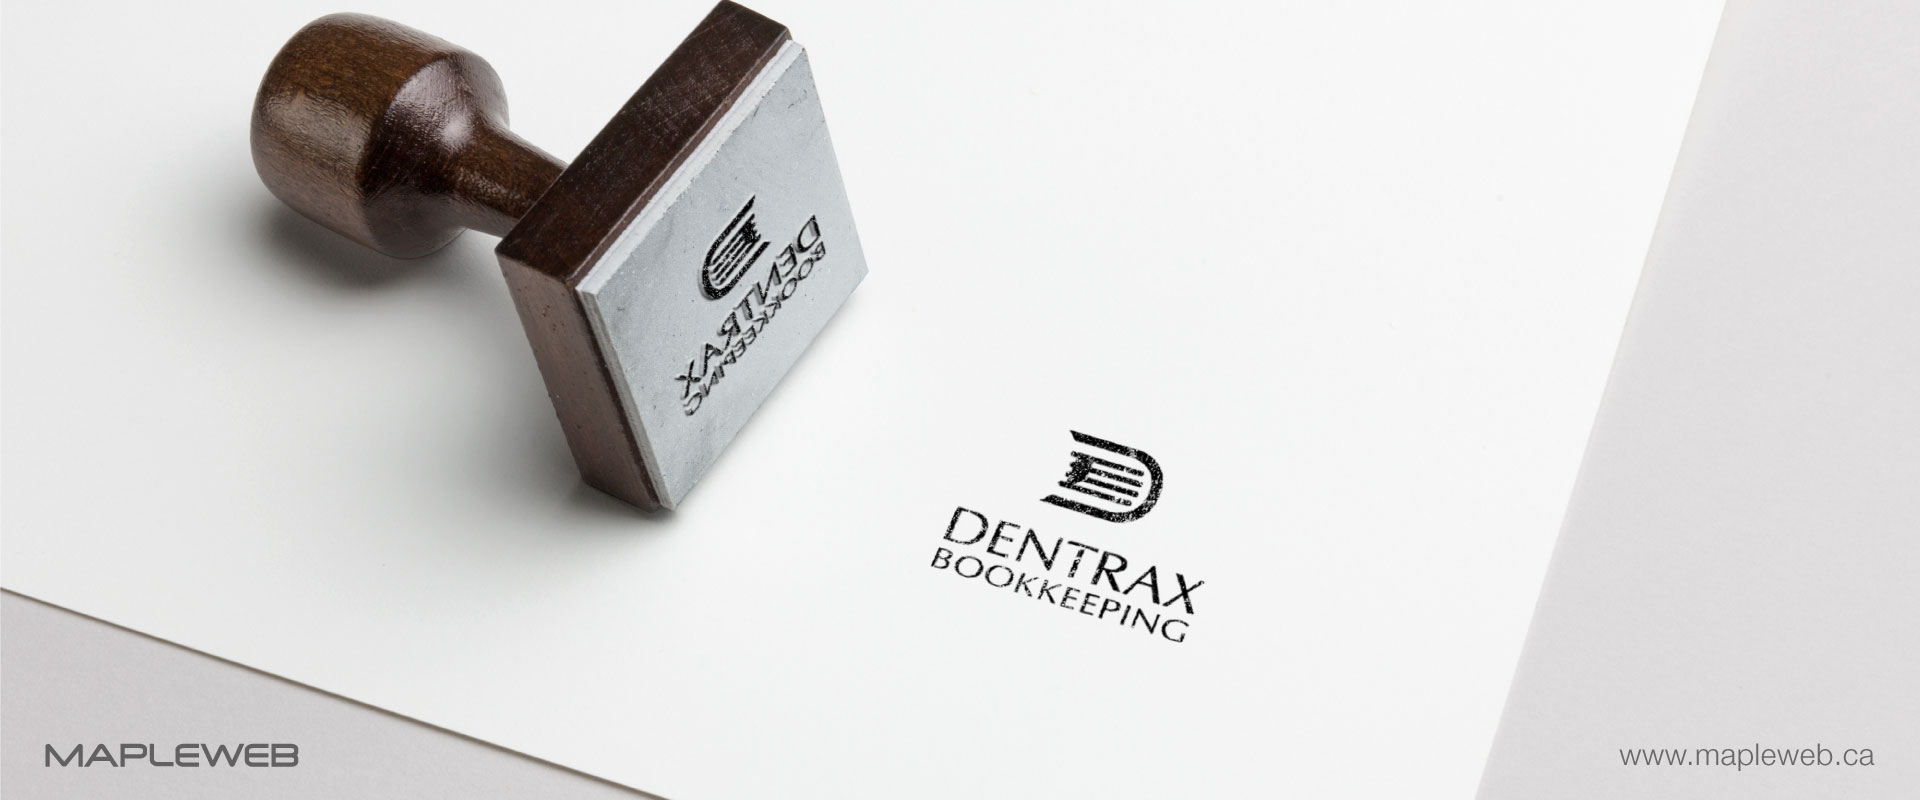 dentraxbookkeeping-brand-logo-design-by-mapleweb-vancouver-canada-stamp-mock